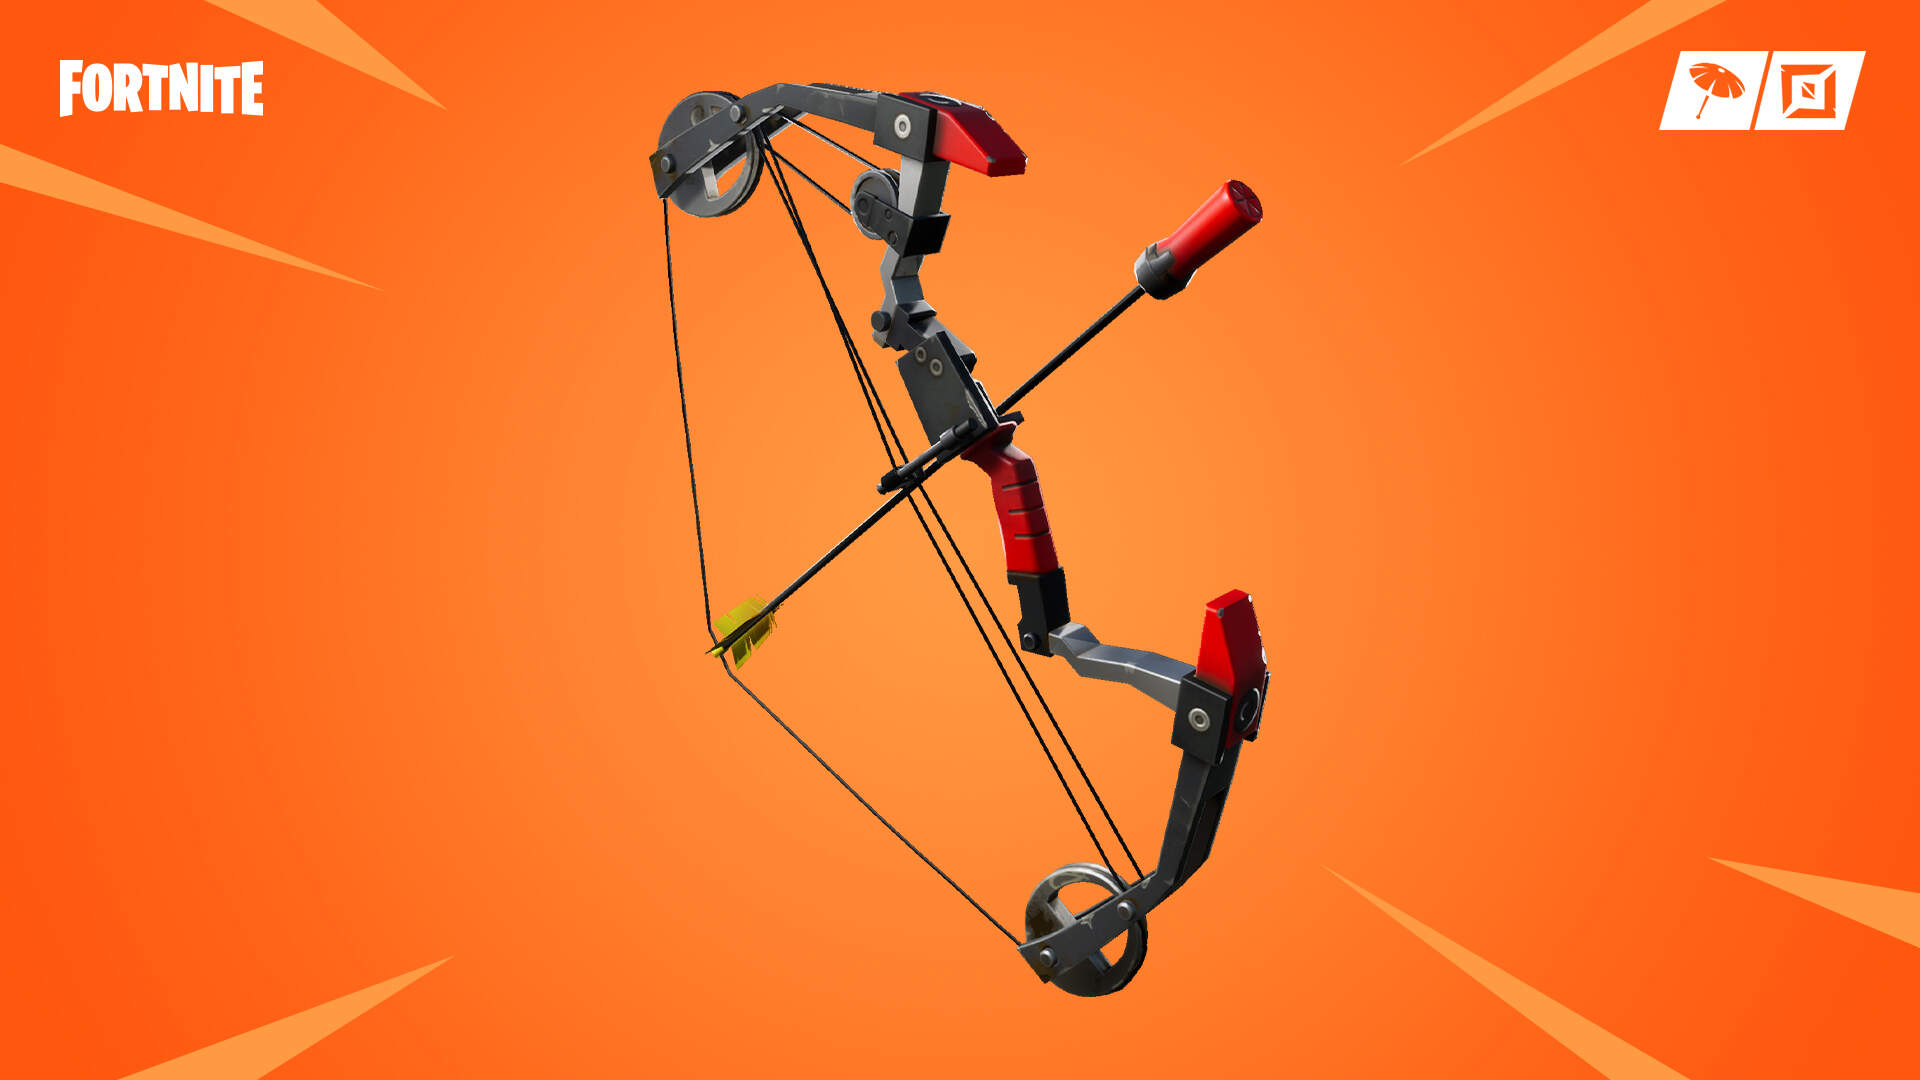 Fortnite V8.20 Update Introduces the Boom Bow